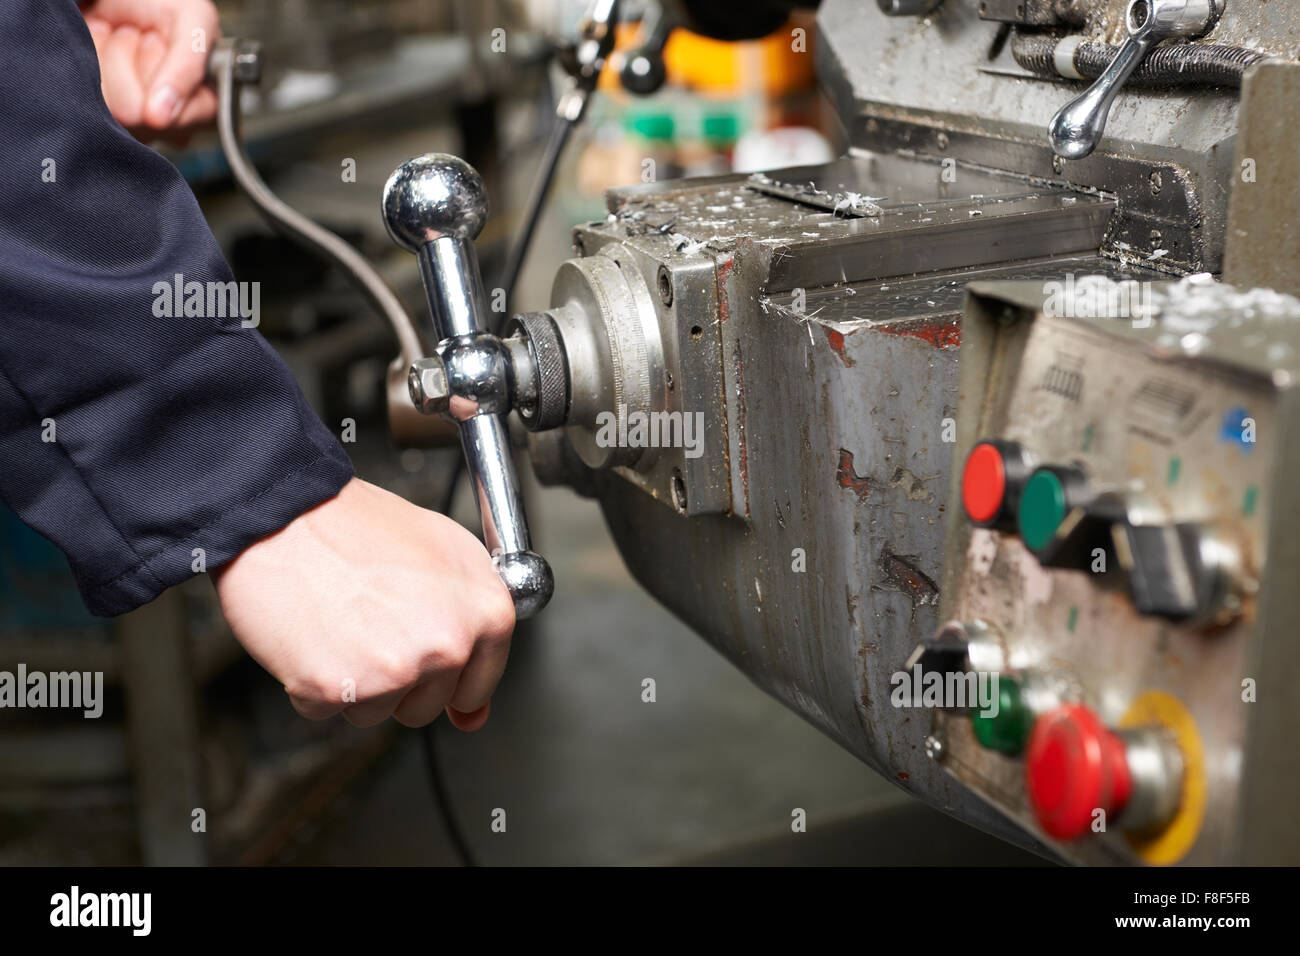 Detail Of Engineers Hands Operation Controls On Lathe - Stock Image